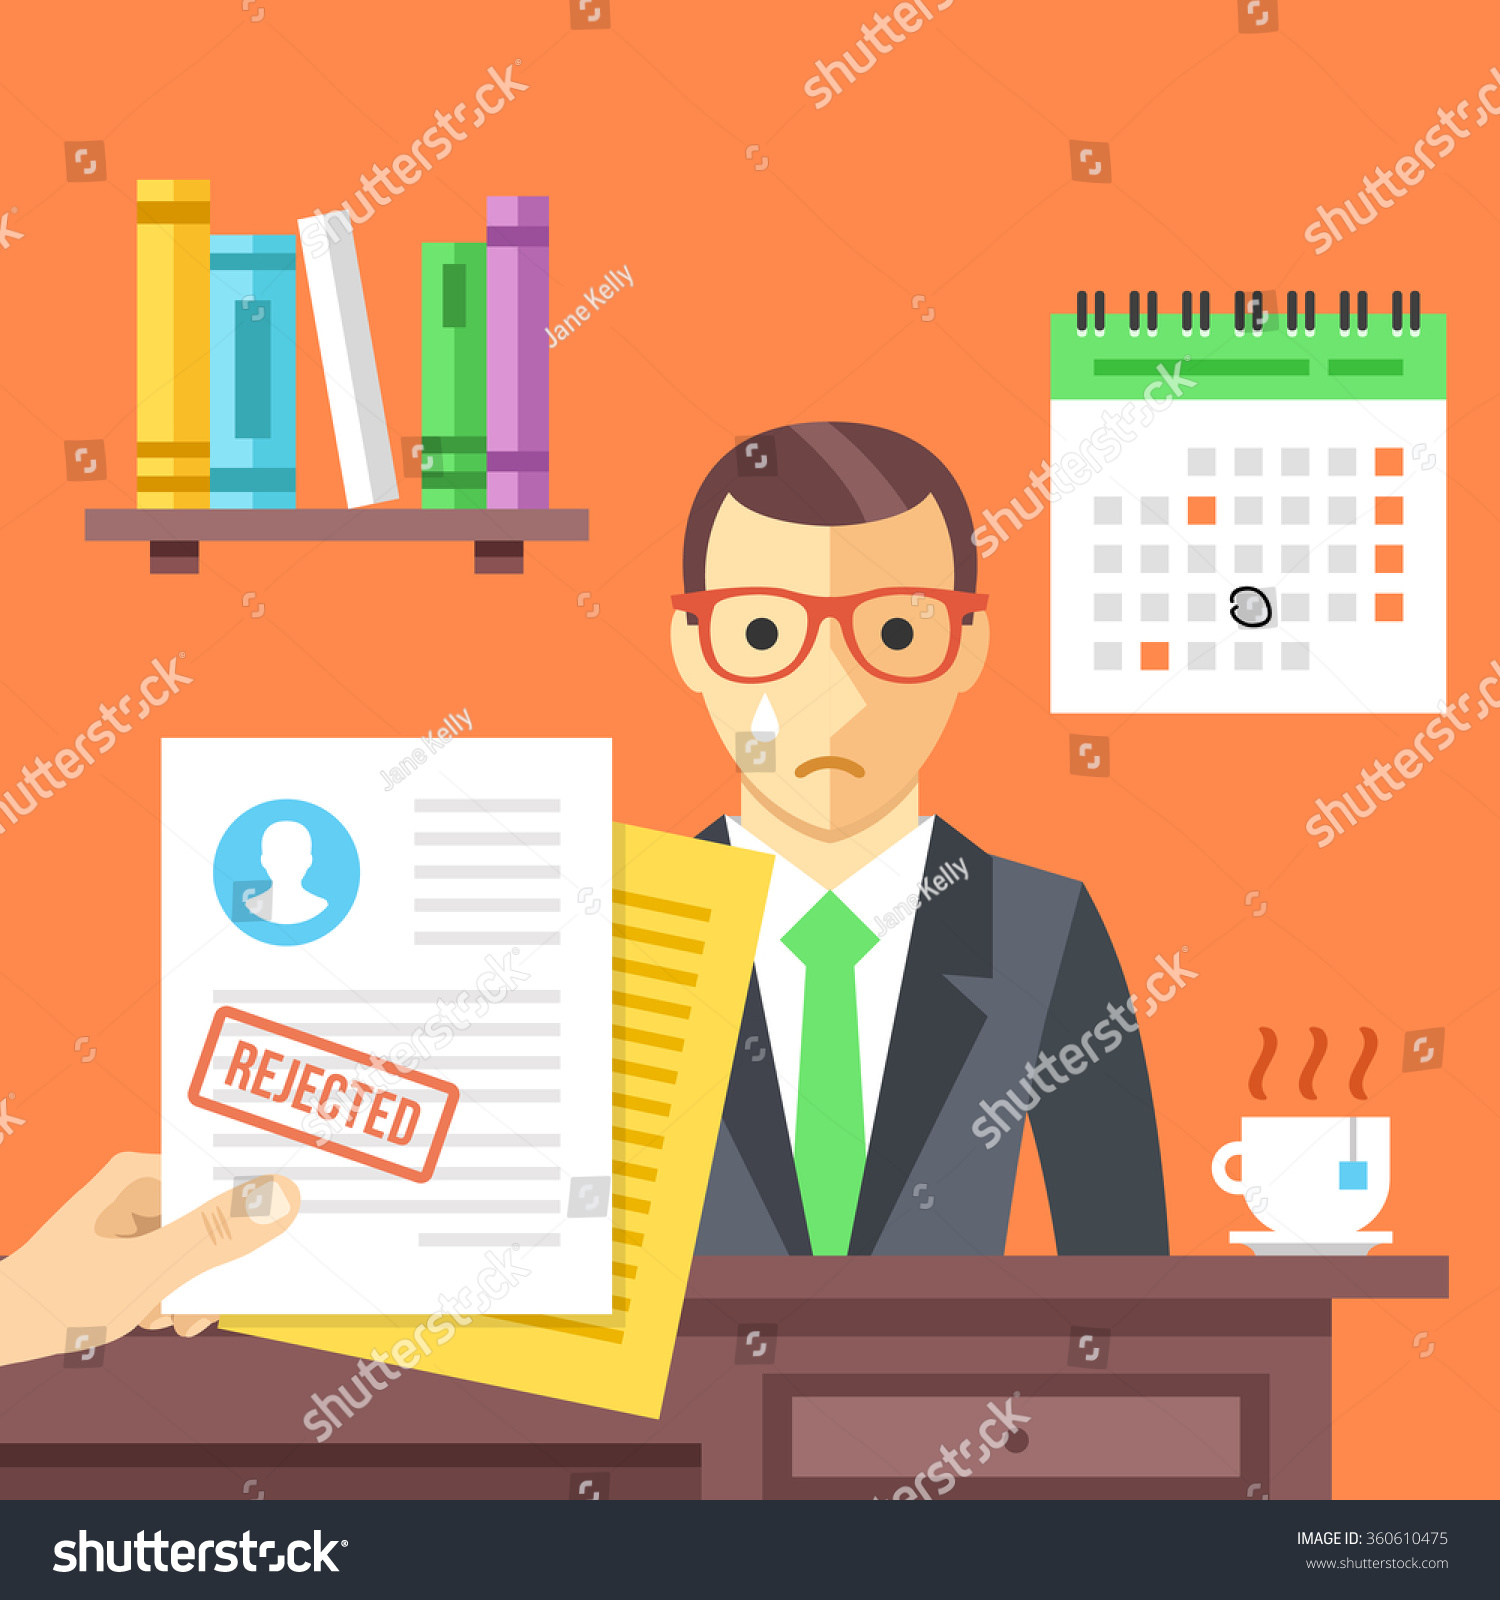 job interview rejected job application stamp stock vector job interview rejected job application a stamp sad man didn t get